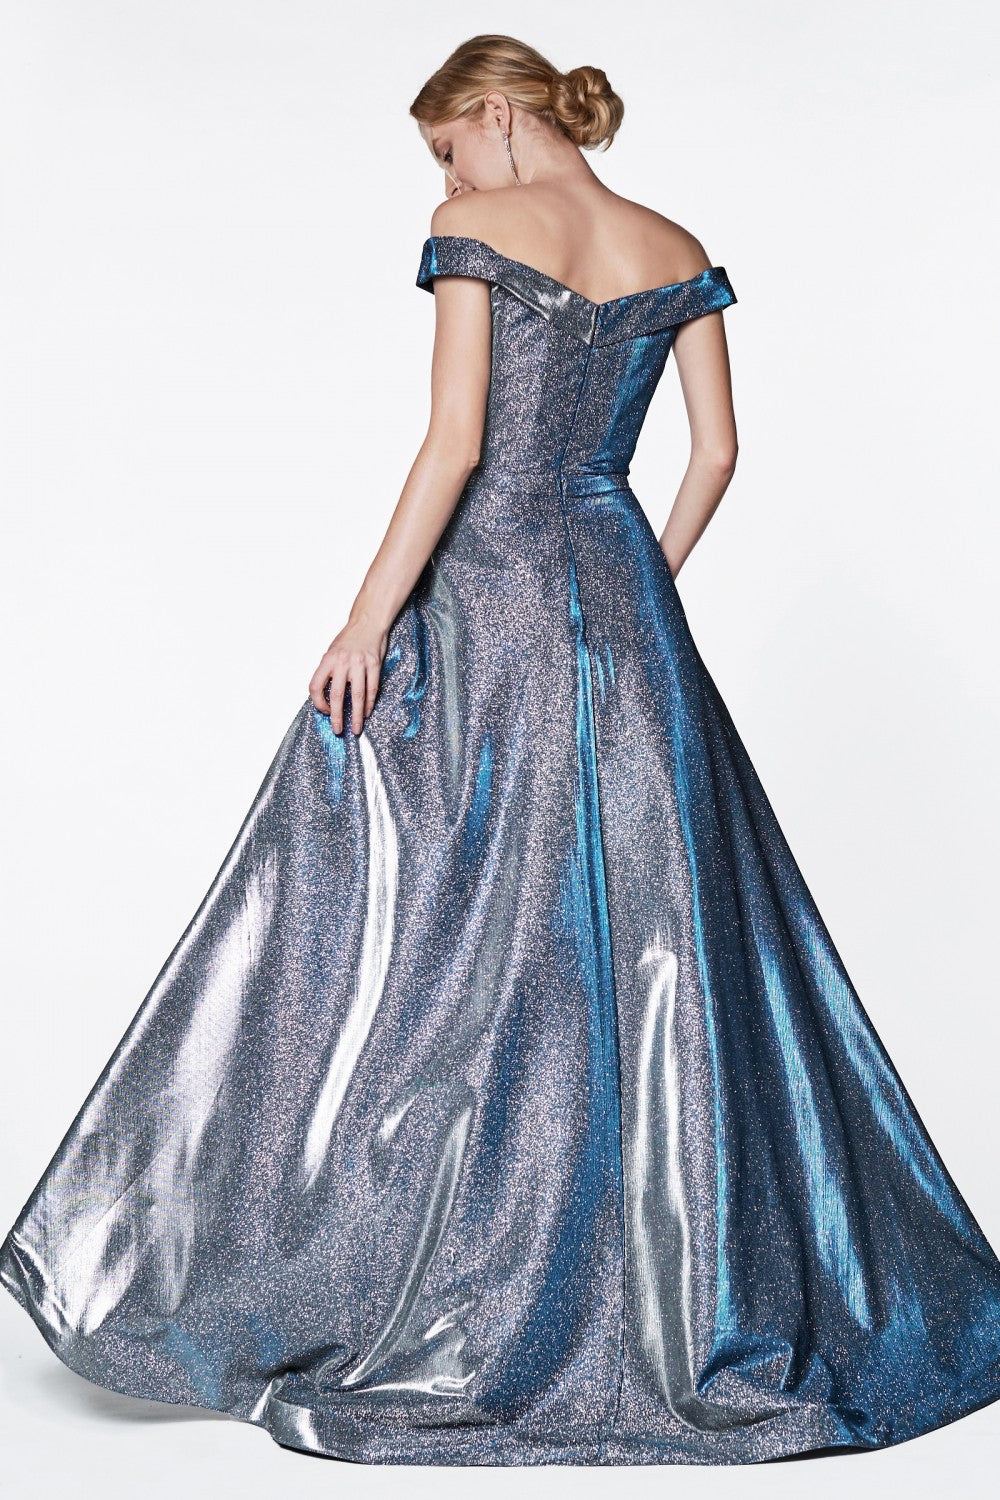 Off The Shoulder Ball Gown With Glitter Effect And Pockets